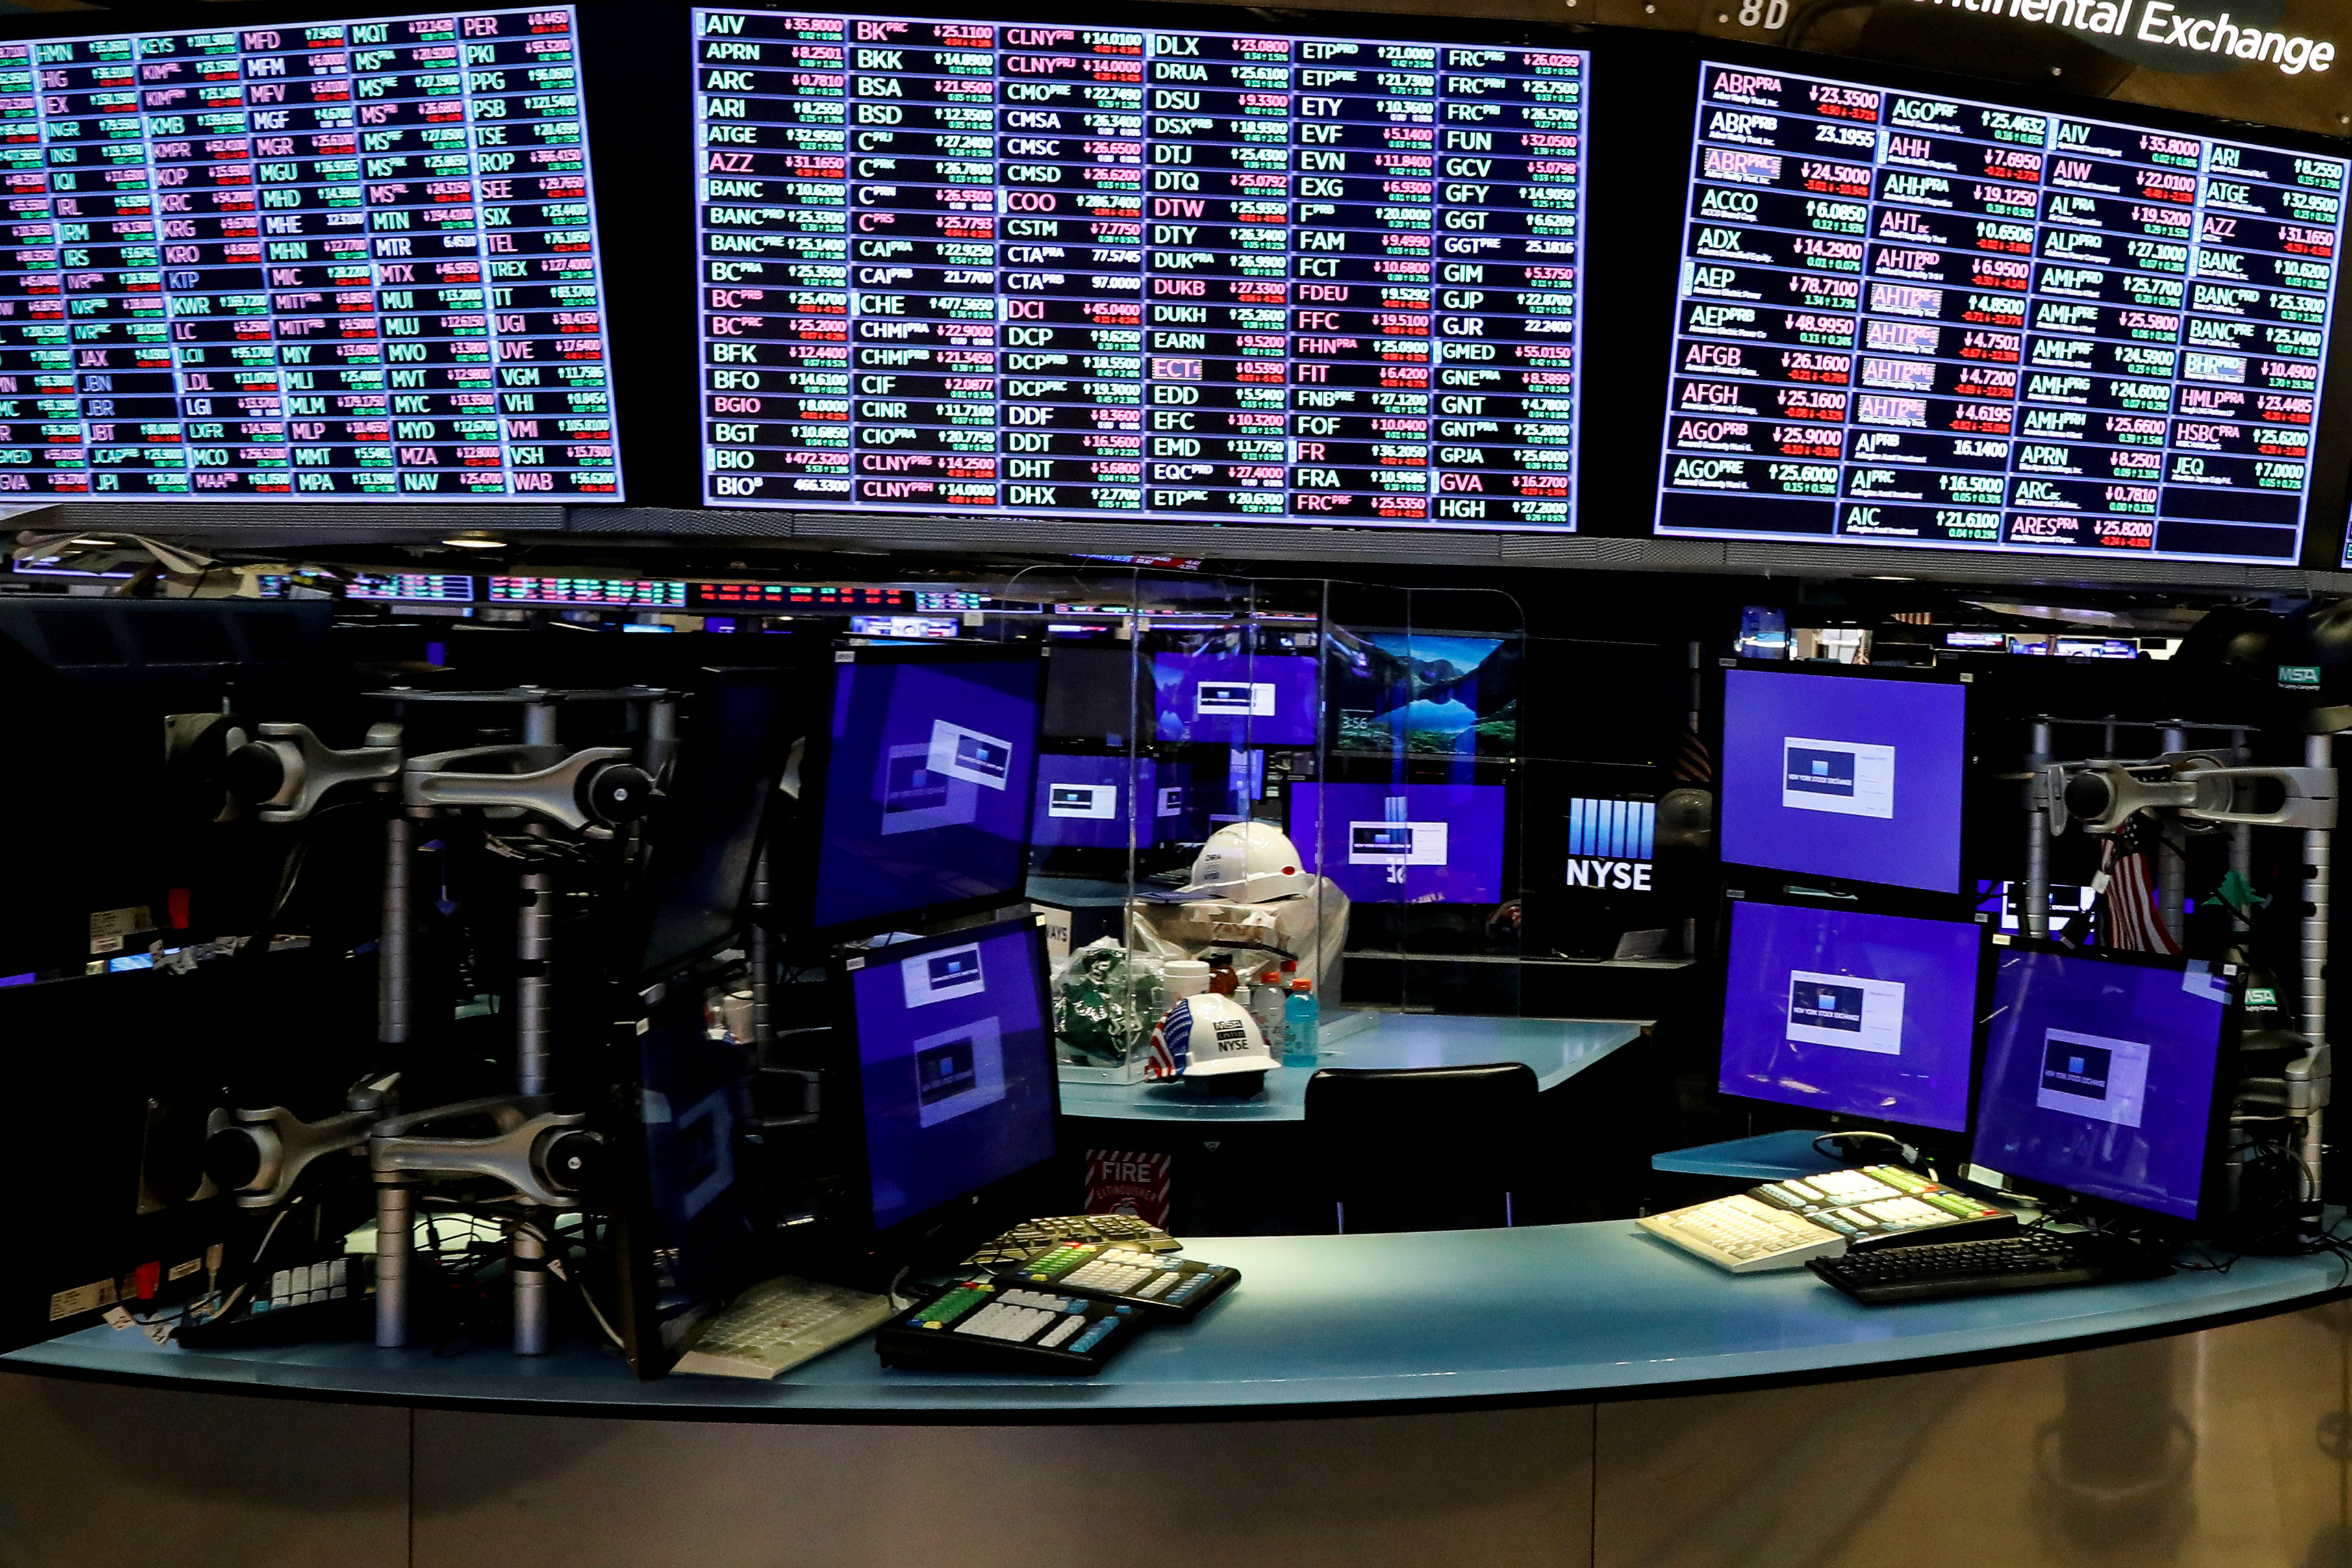 Dividers are seen inside a trading post on the trading floor as preparations are made for the return to trading at the New York Stock Exchange (NYSE) in New York, U.S., May 22, 2020. REUTERS/Brendan McDermid/File Photo/File Photo